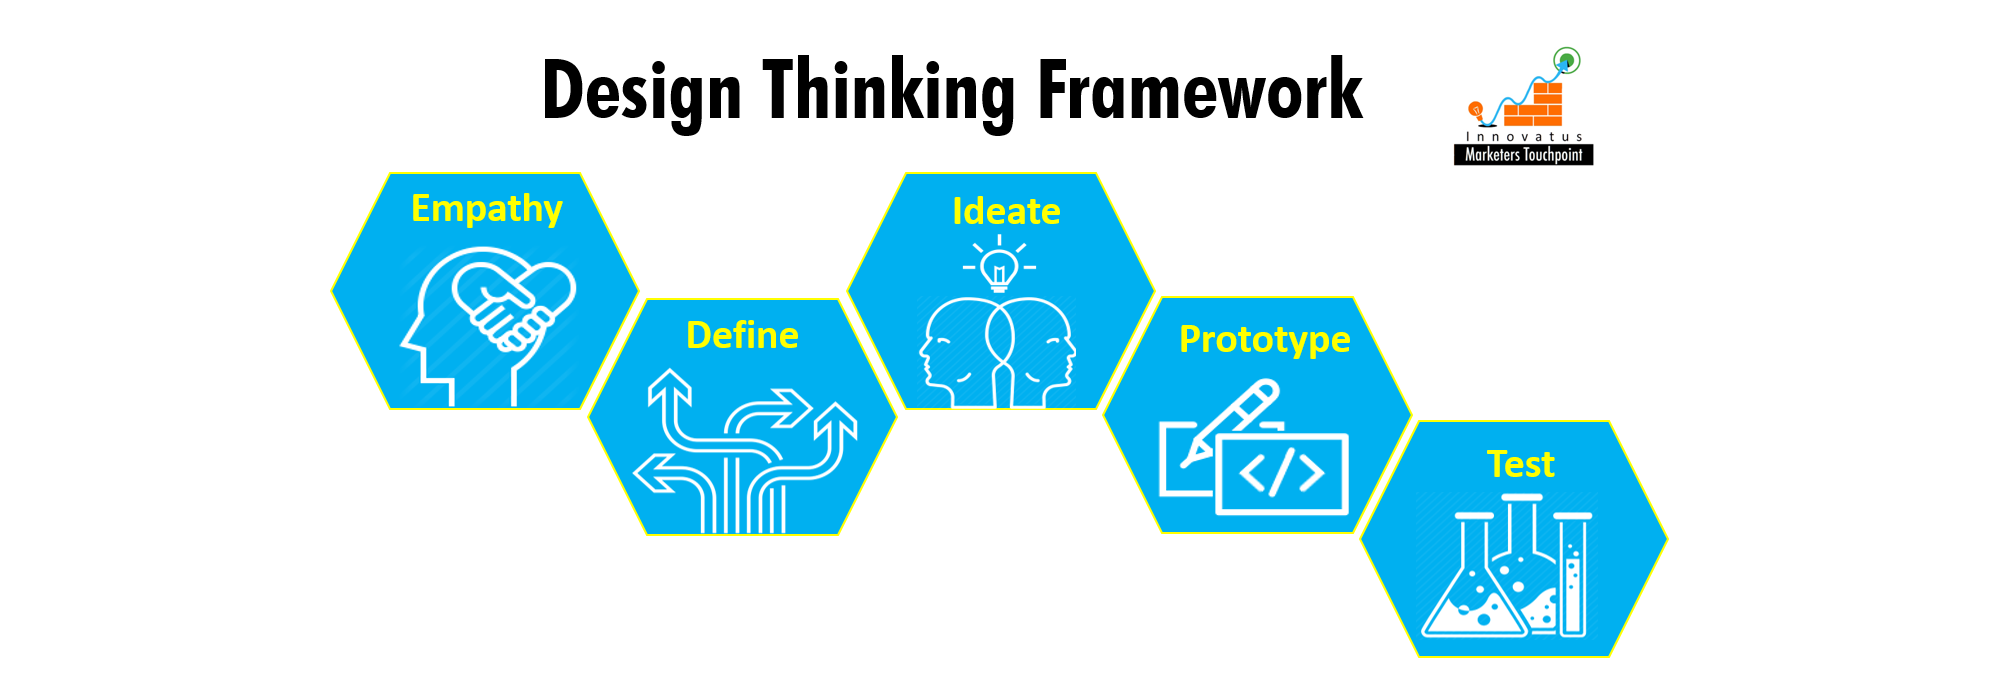 Design Thinking Framework - Innovatus Marketers Touchpoint LLP